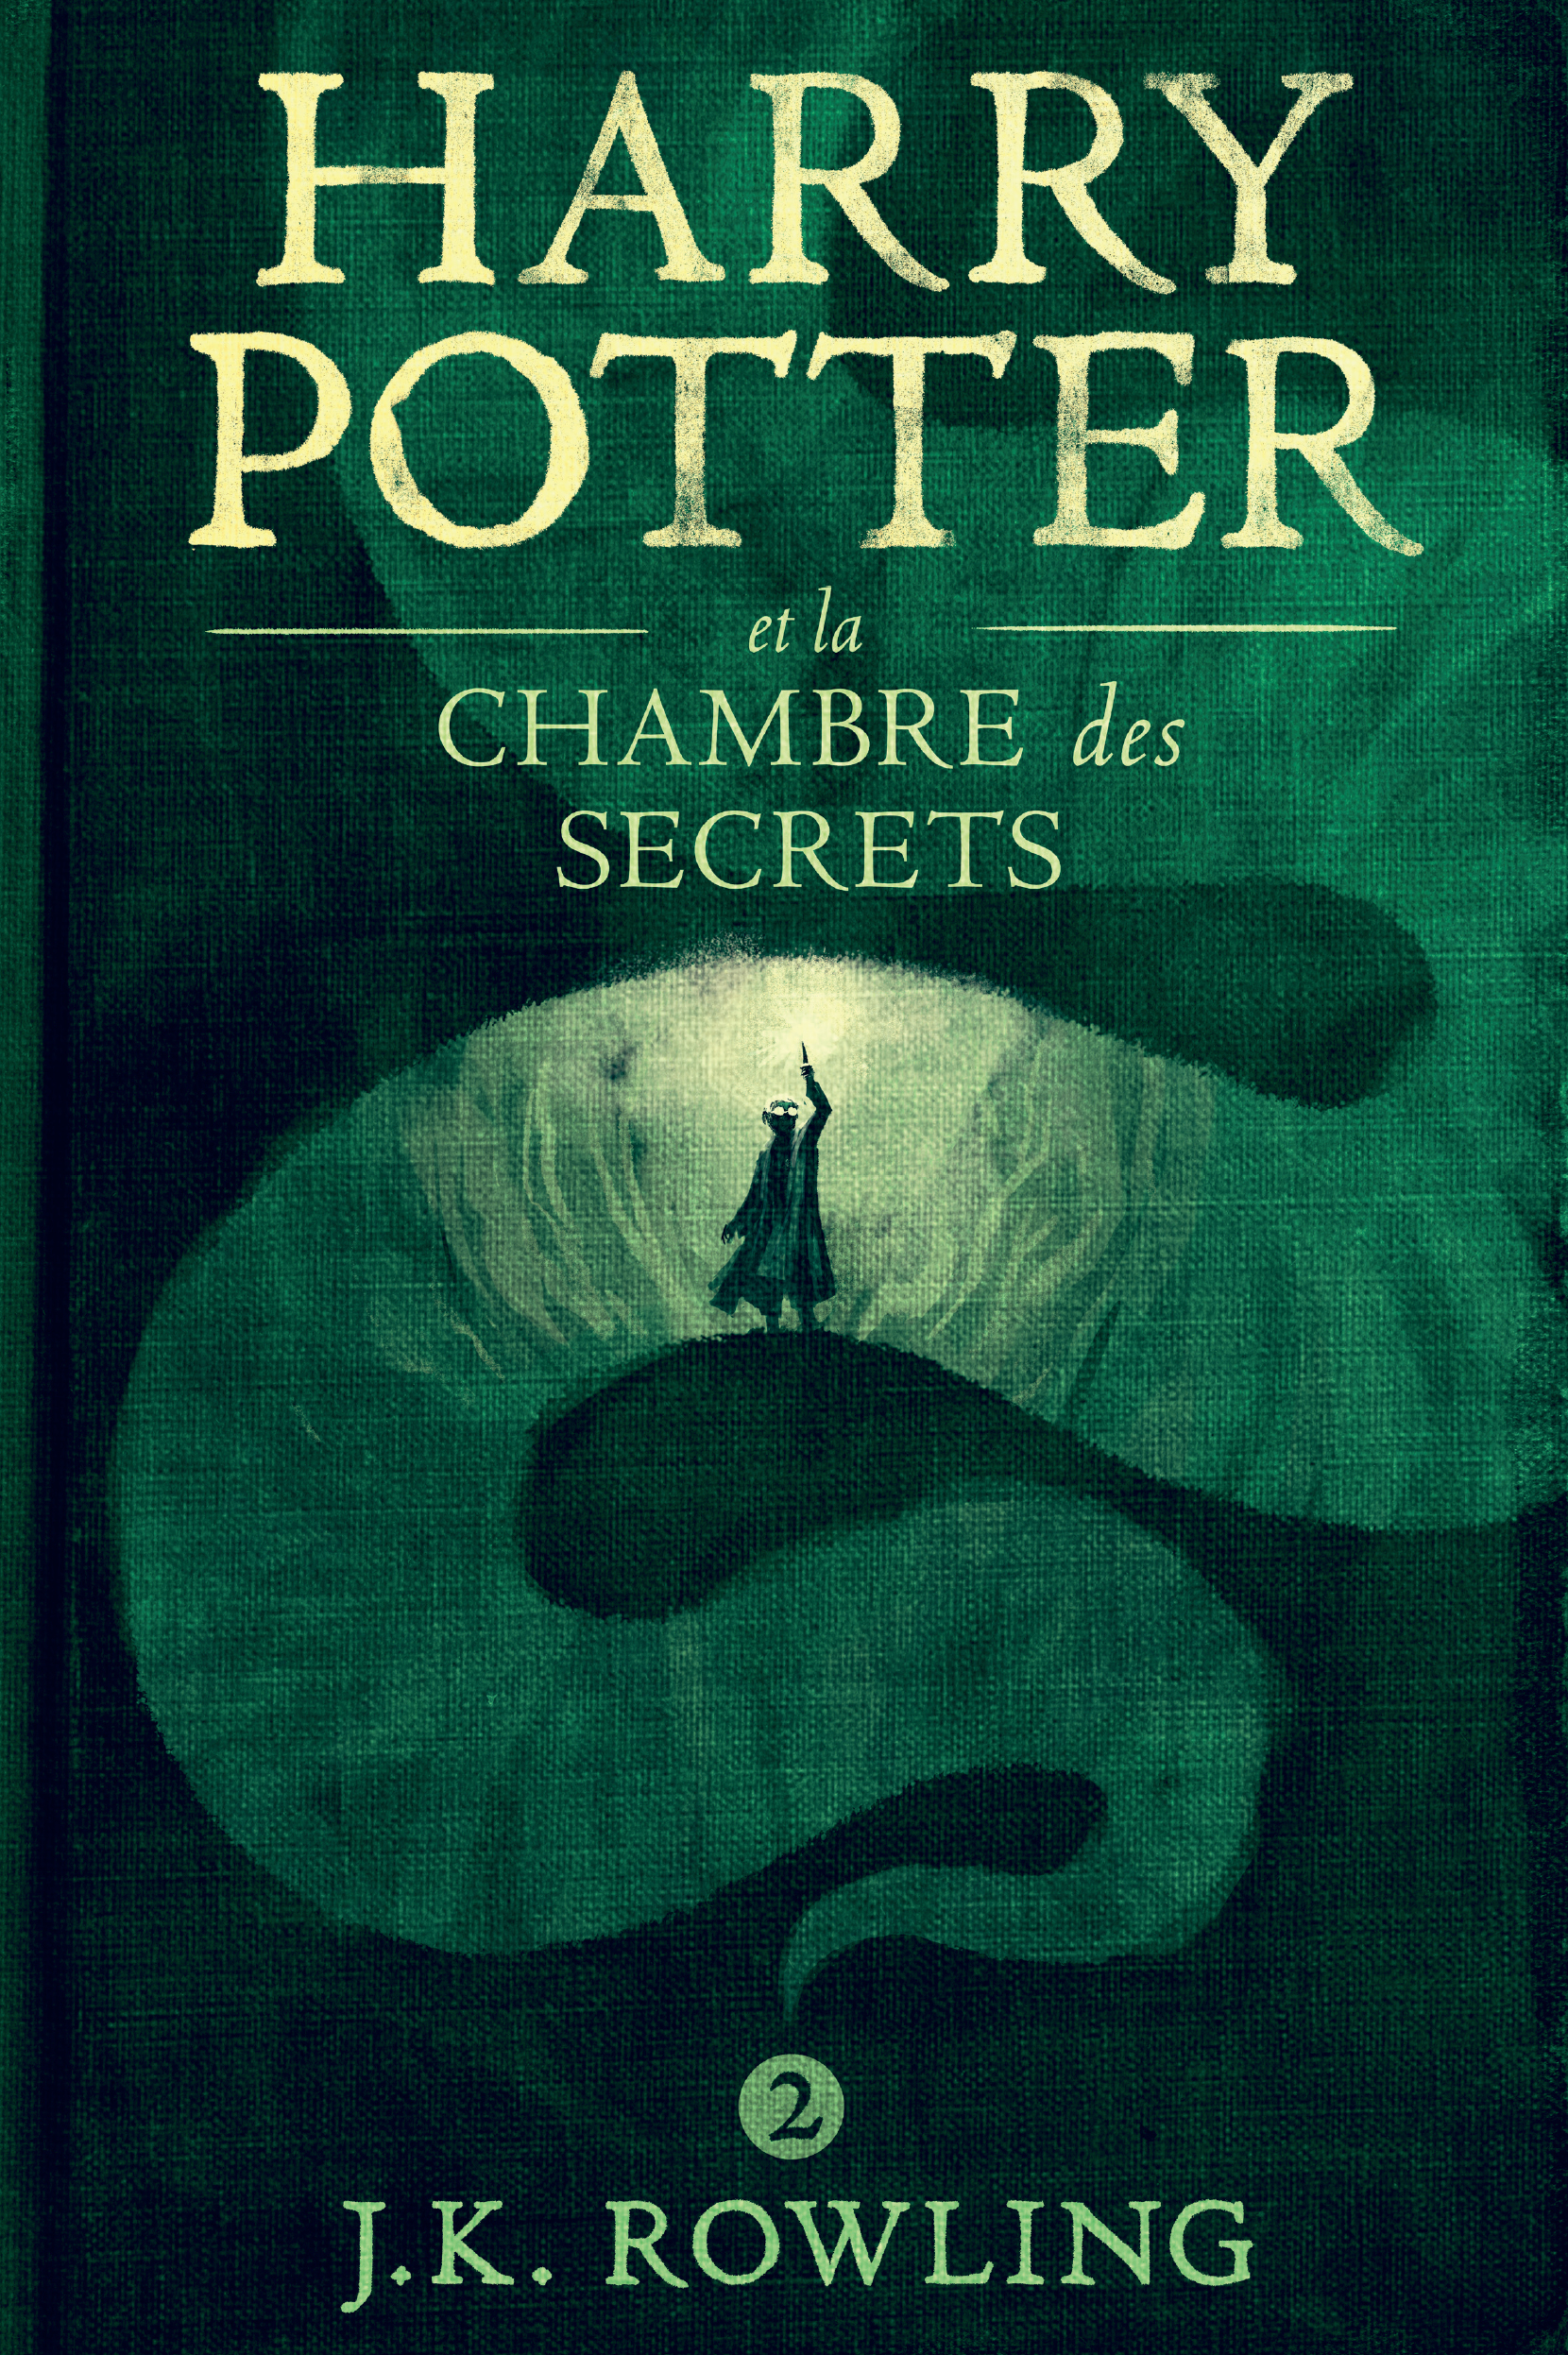 Harry potter et la chambre des secrets by j k rowling and - Harry potter chambre secrets streaming ...